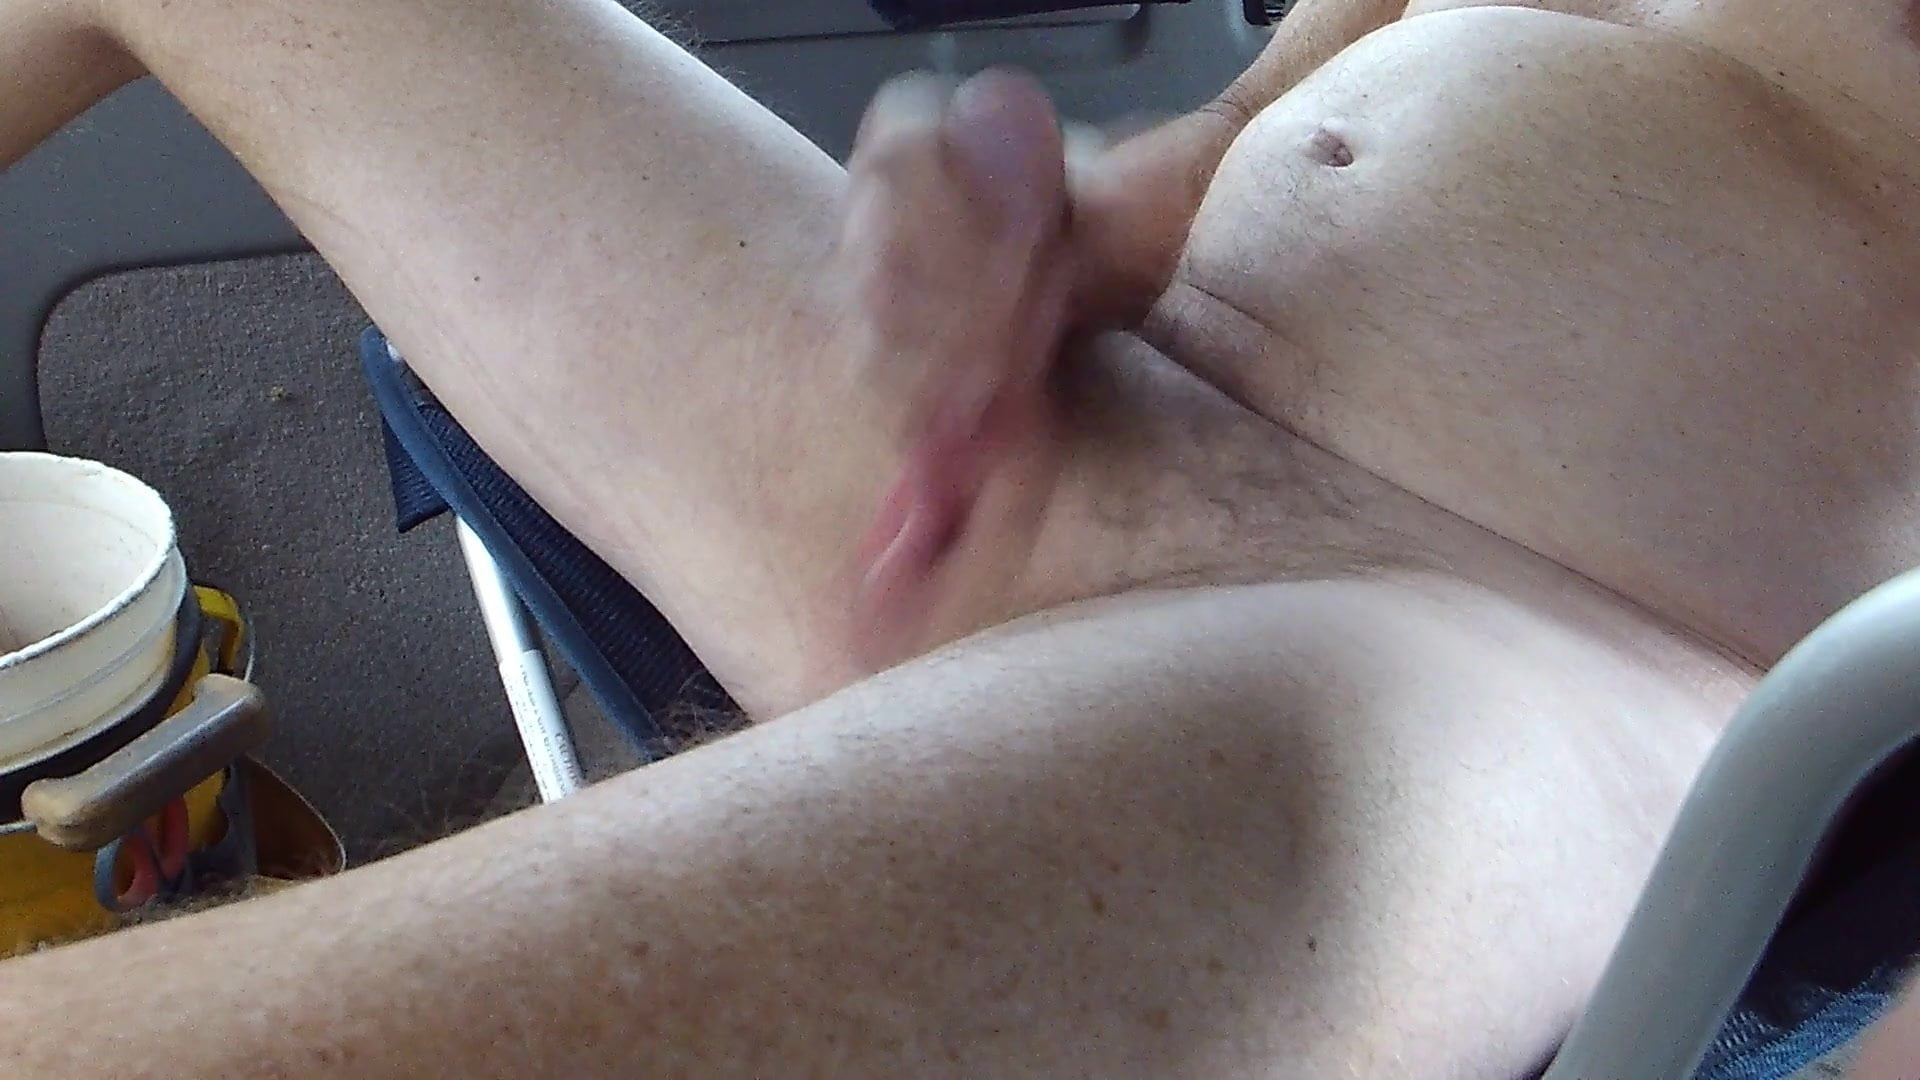 Parking Lot Wank Free Gay Iphone Free Hd Porn Video 4C-9247